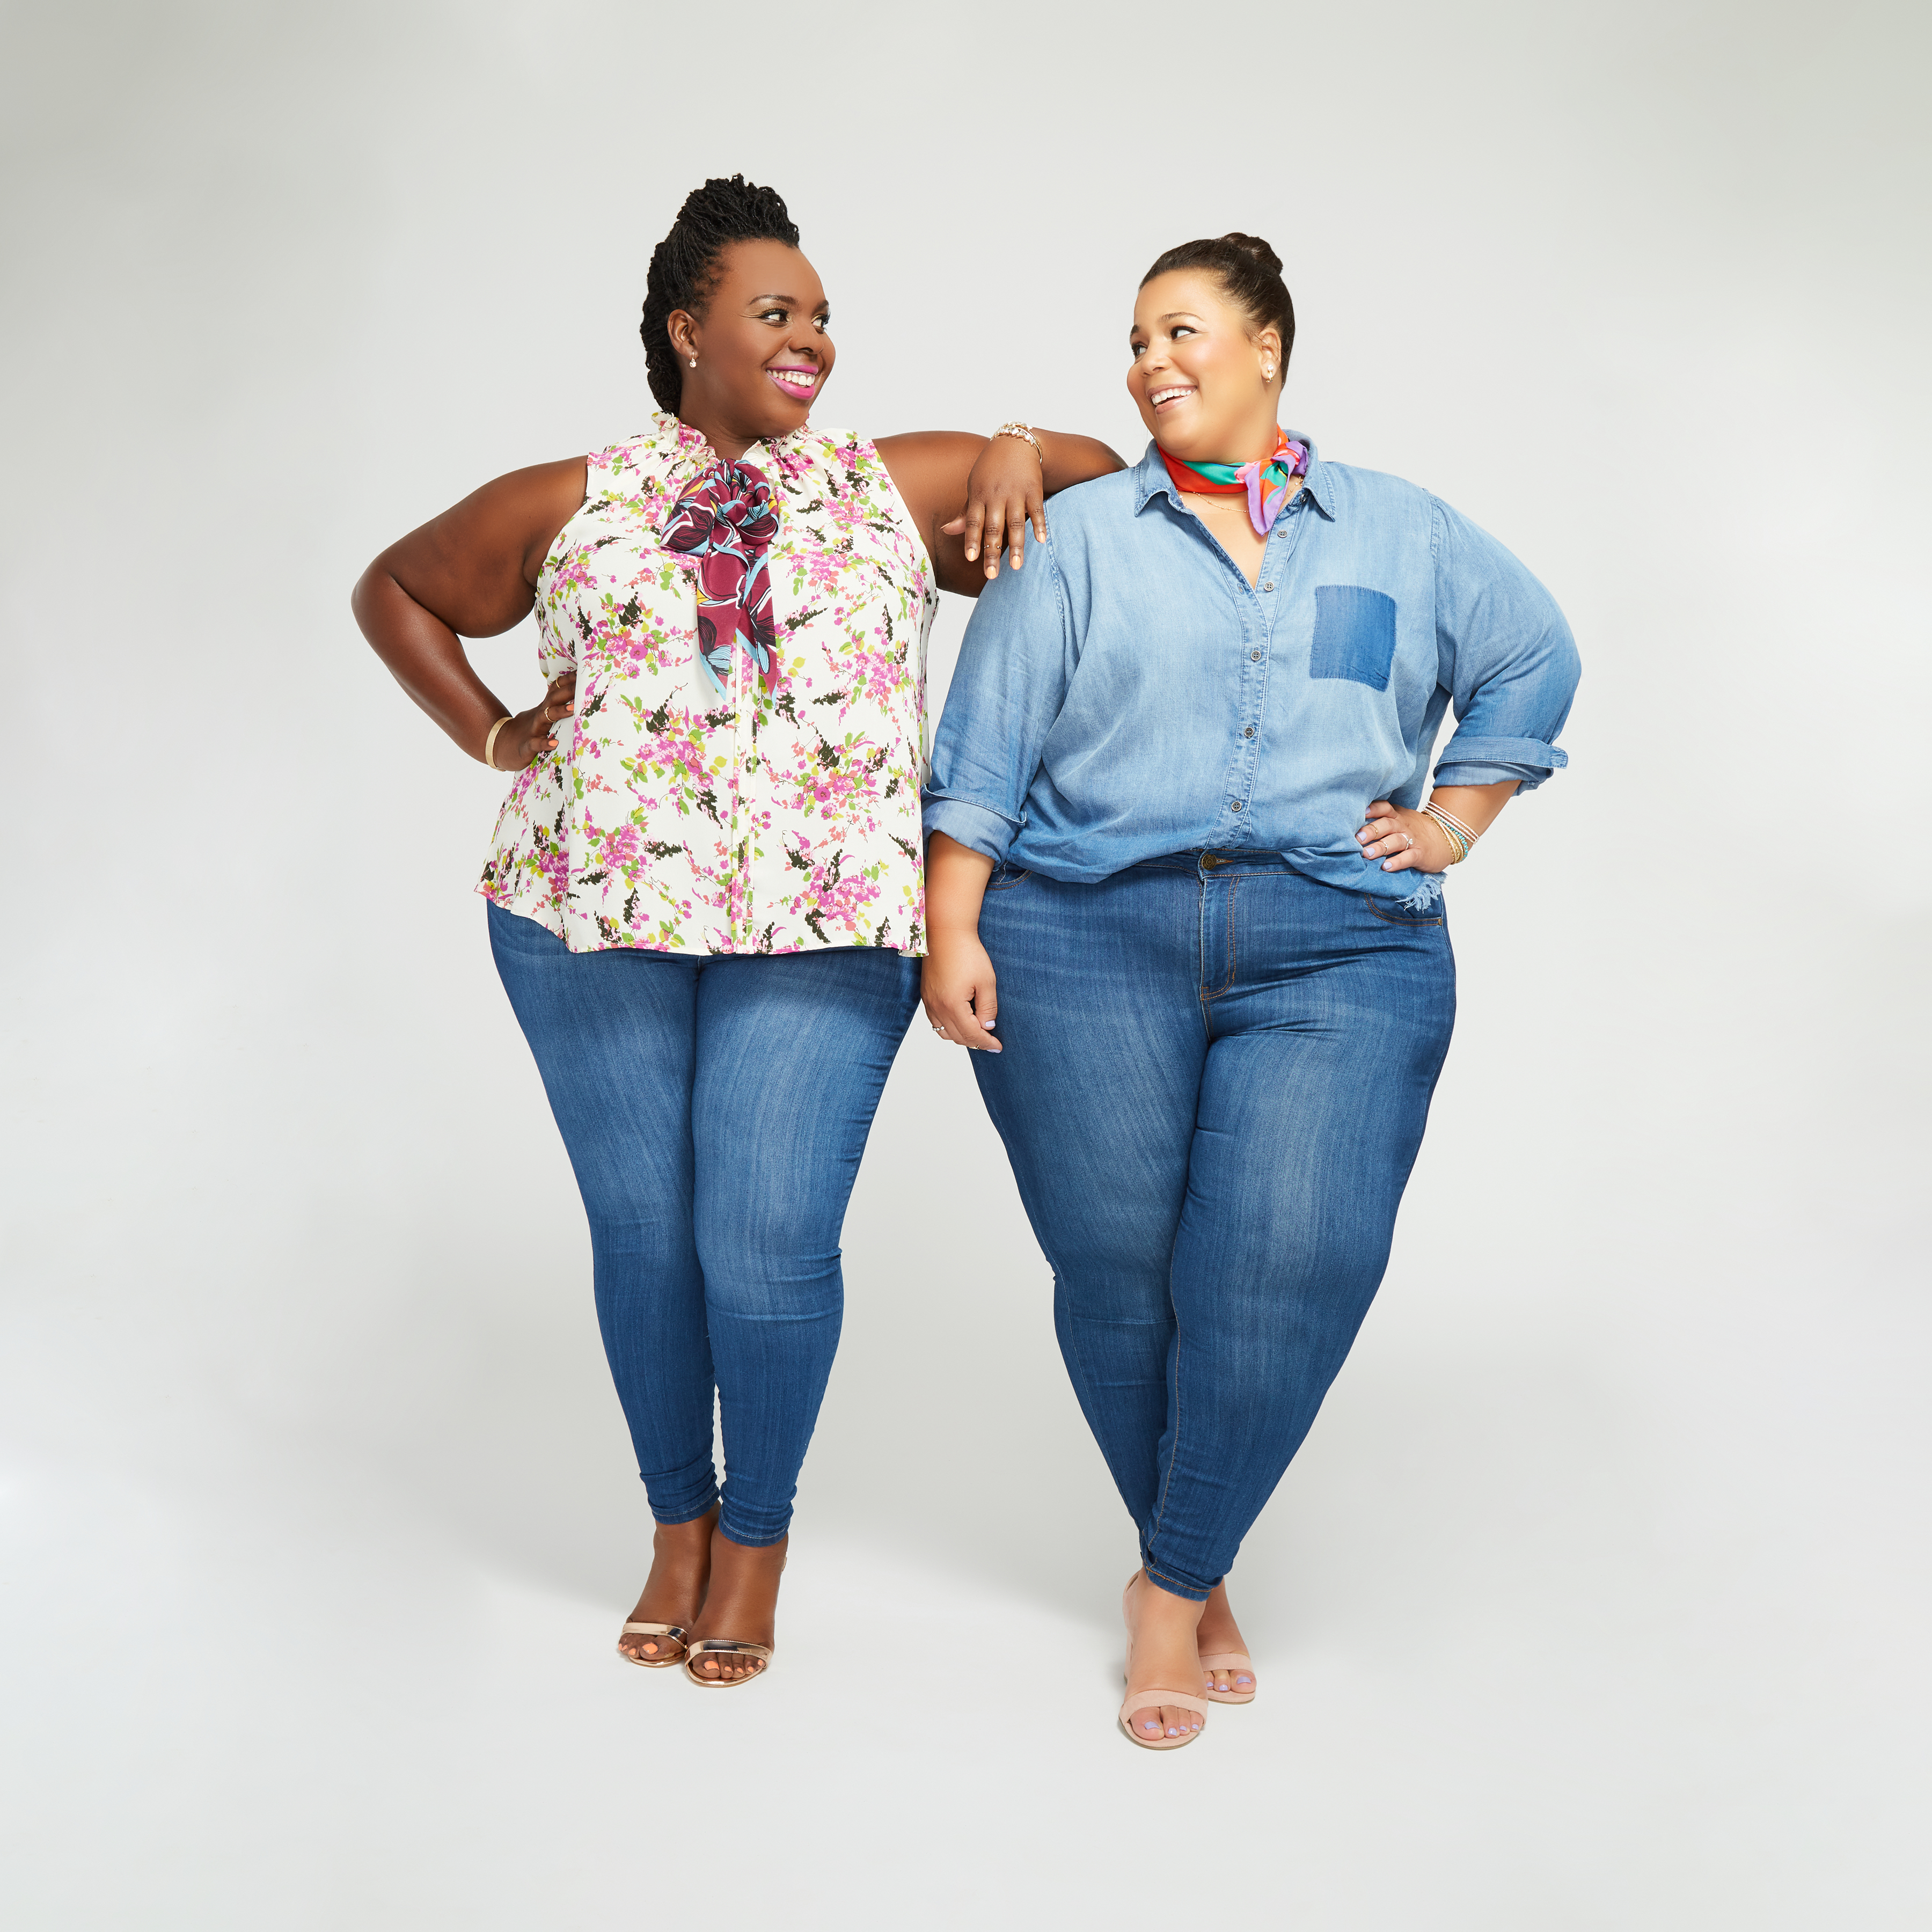 The founders of theCURVYcon